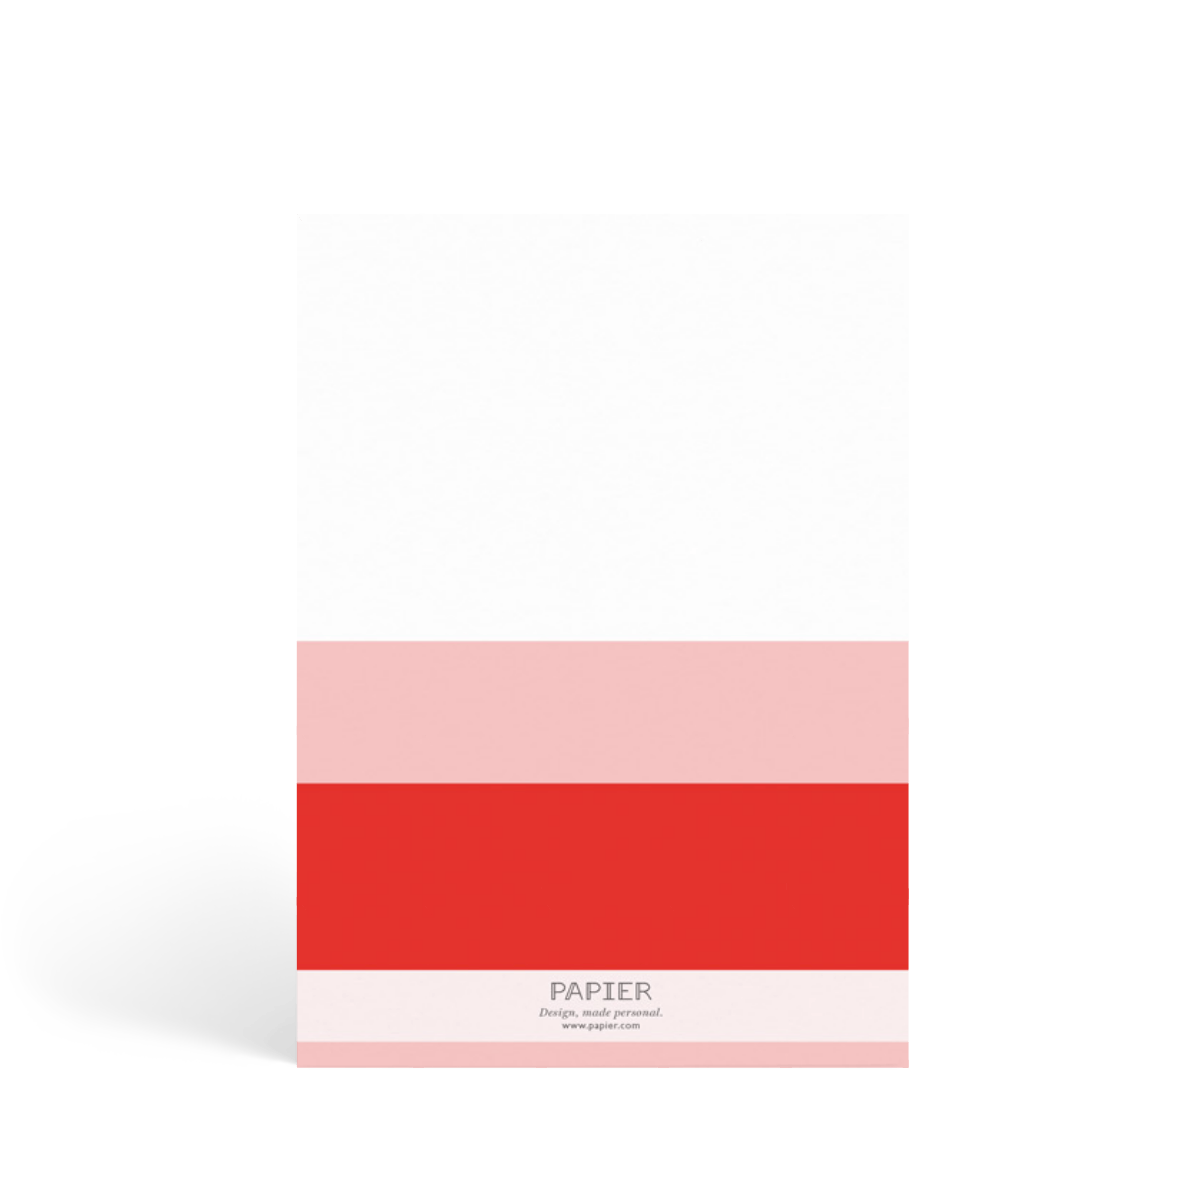 Https%3a%2f%2fwww.papier.com%2fproduct image%2f67264%2f5%2fstriped colourblock pink red 15947 back 1551095557.png?ixlib=rb 1.1